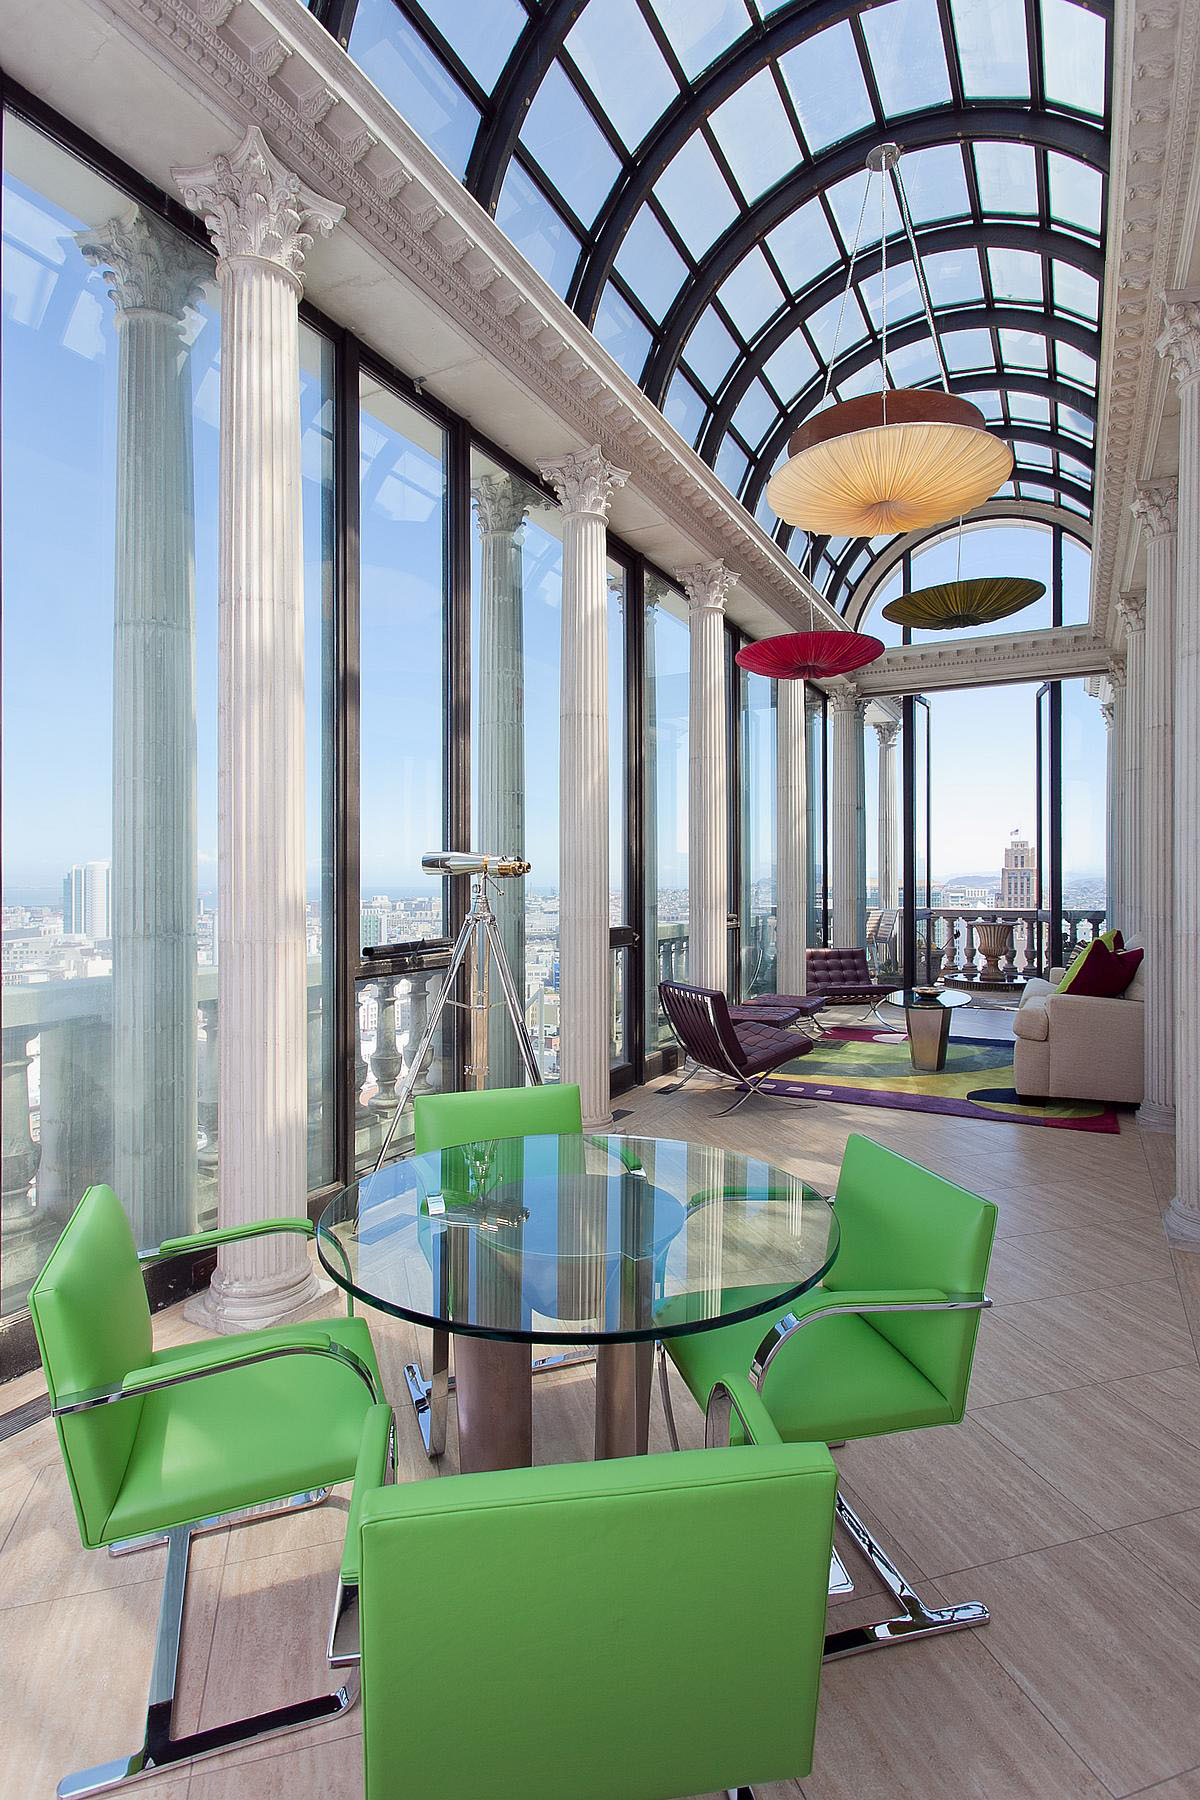 Exquisite penthouse atop the art deco hamilton building in san francisco idesignarch - Home decor san francisco image ...